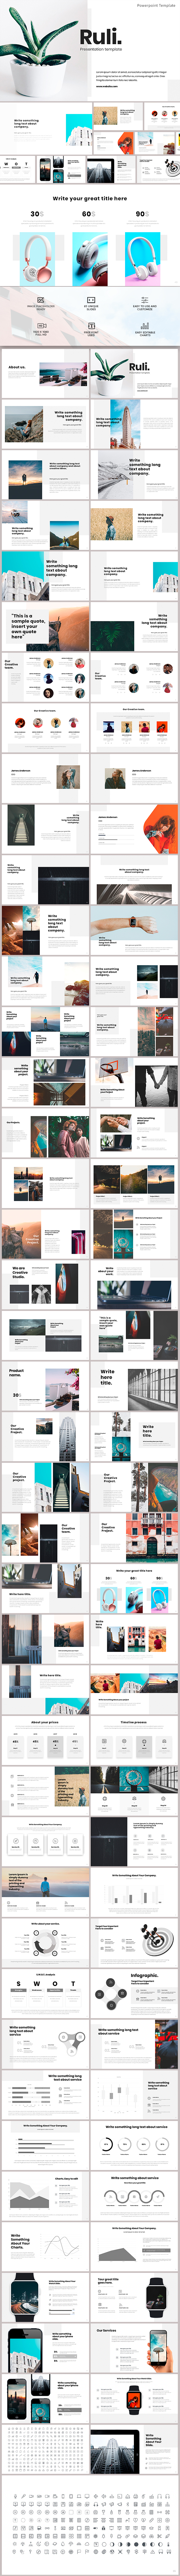 Ruli Powerpoint Template - PowerPoint Templates Presentation Templates